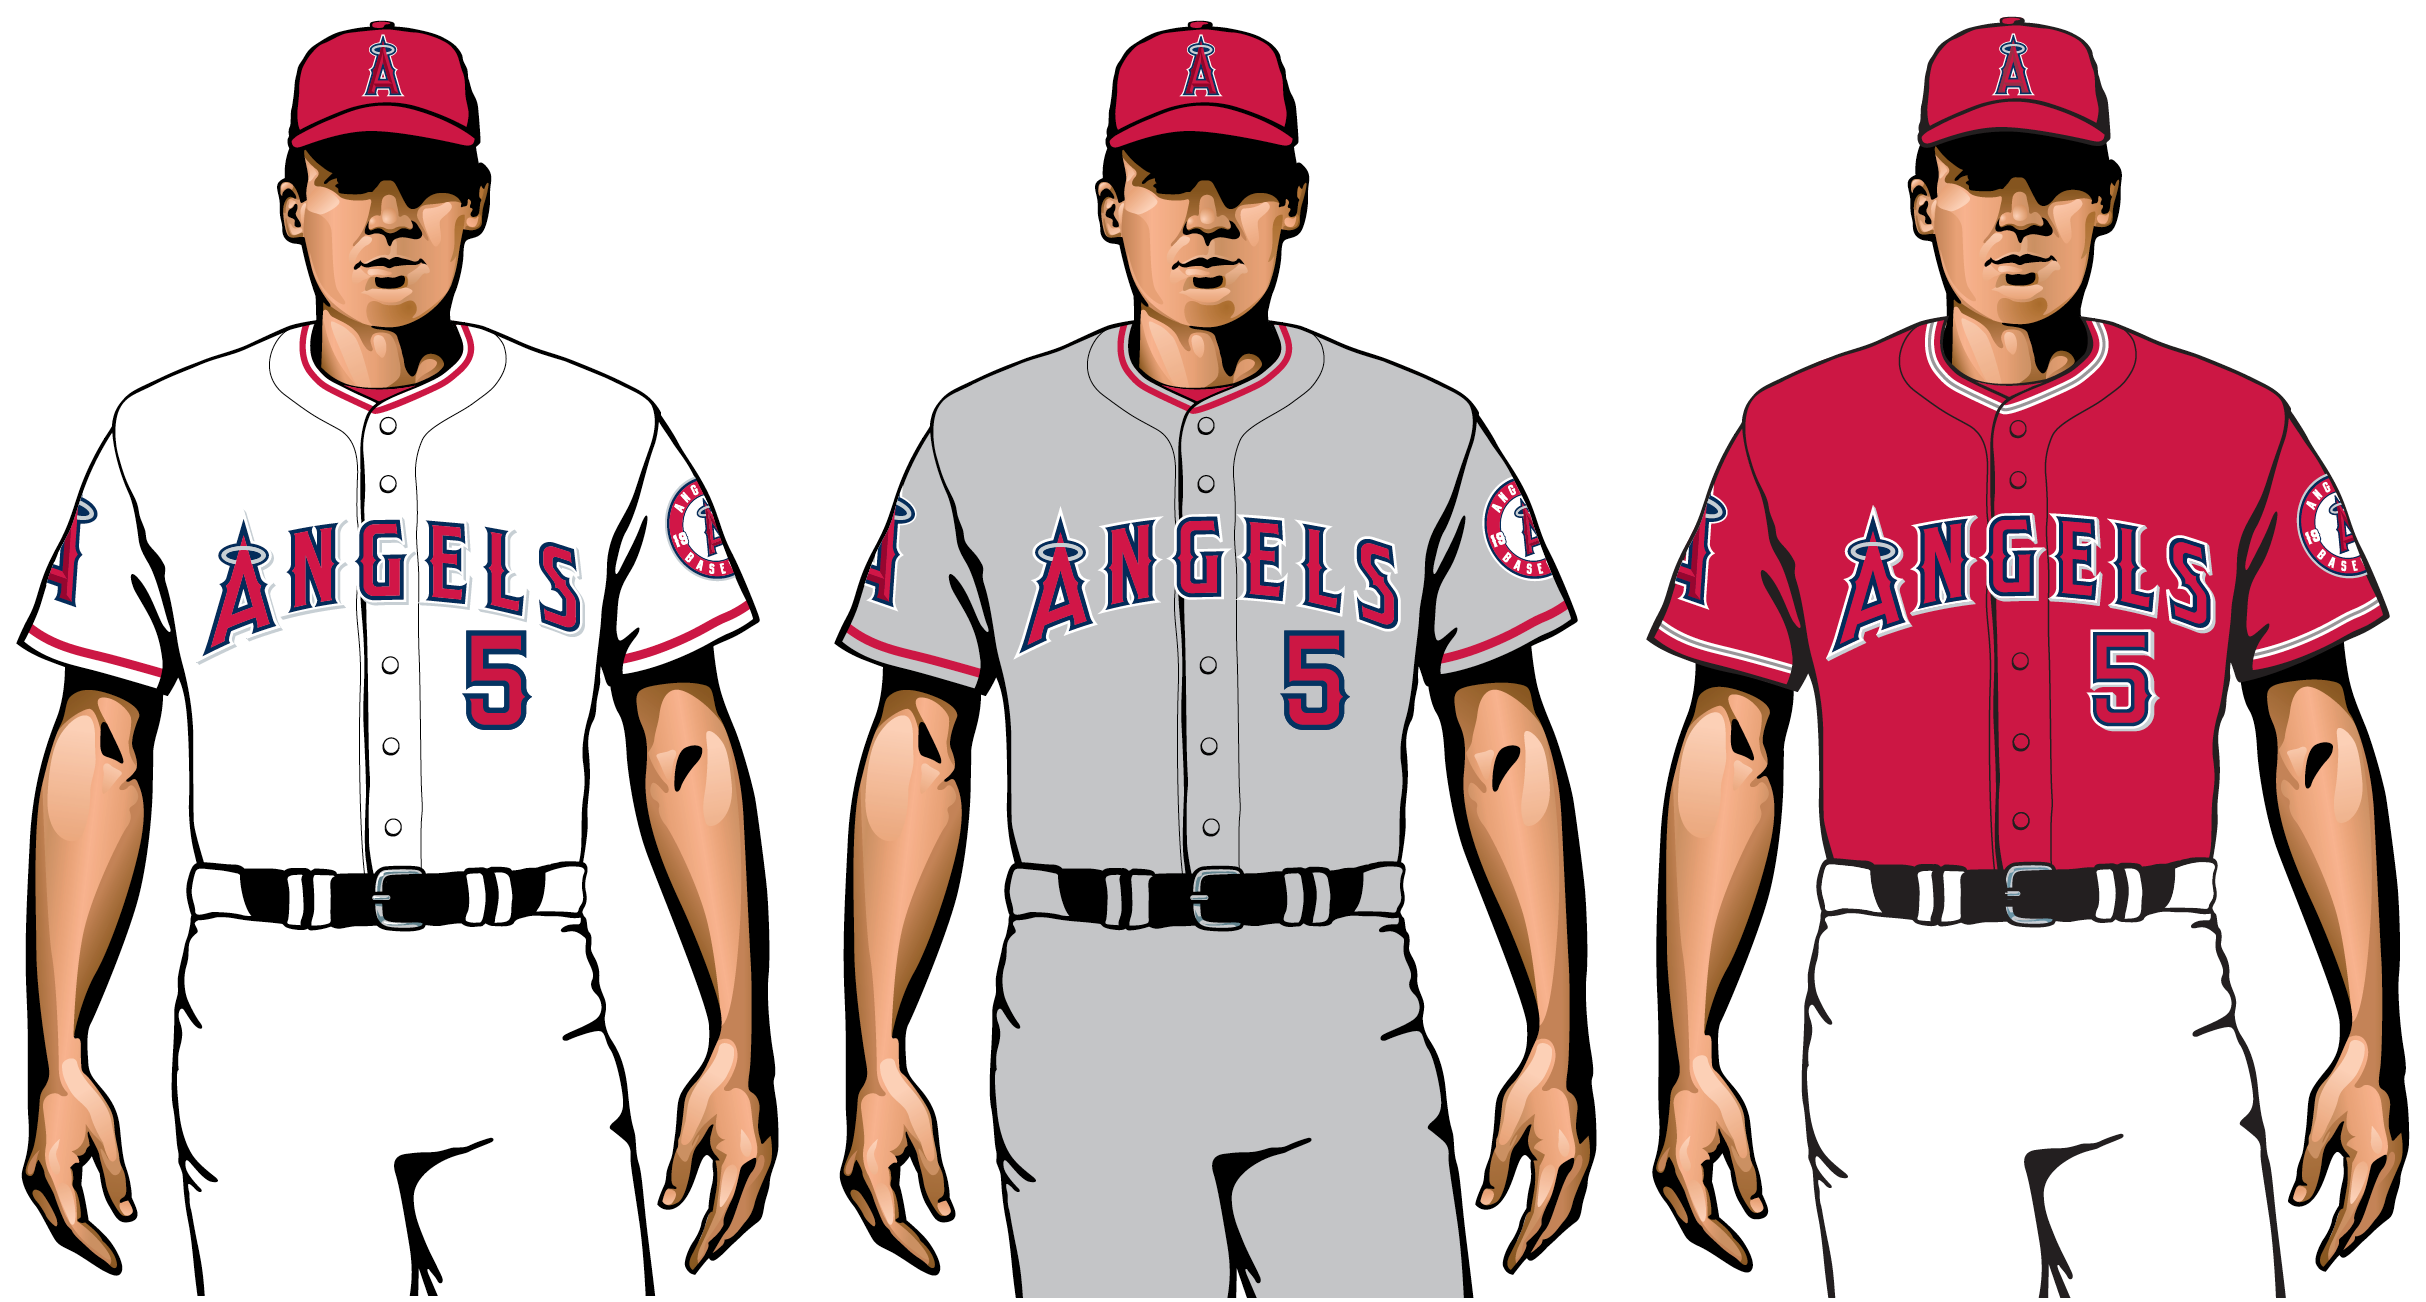 angels 2020 uniforms